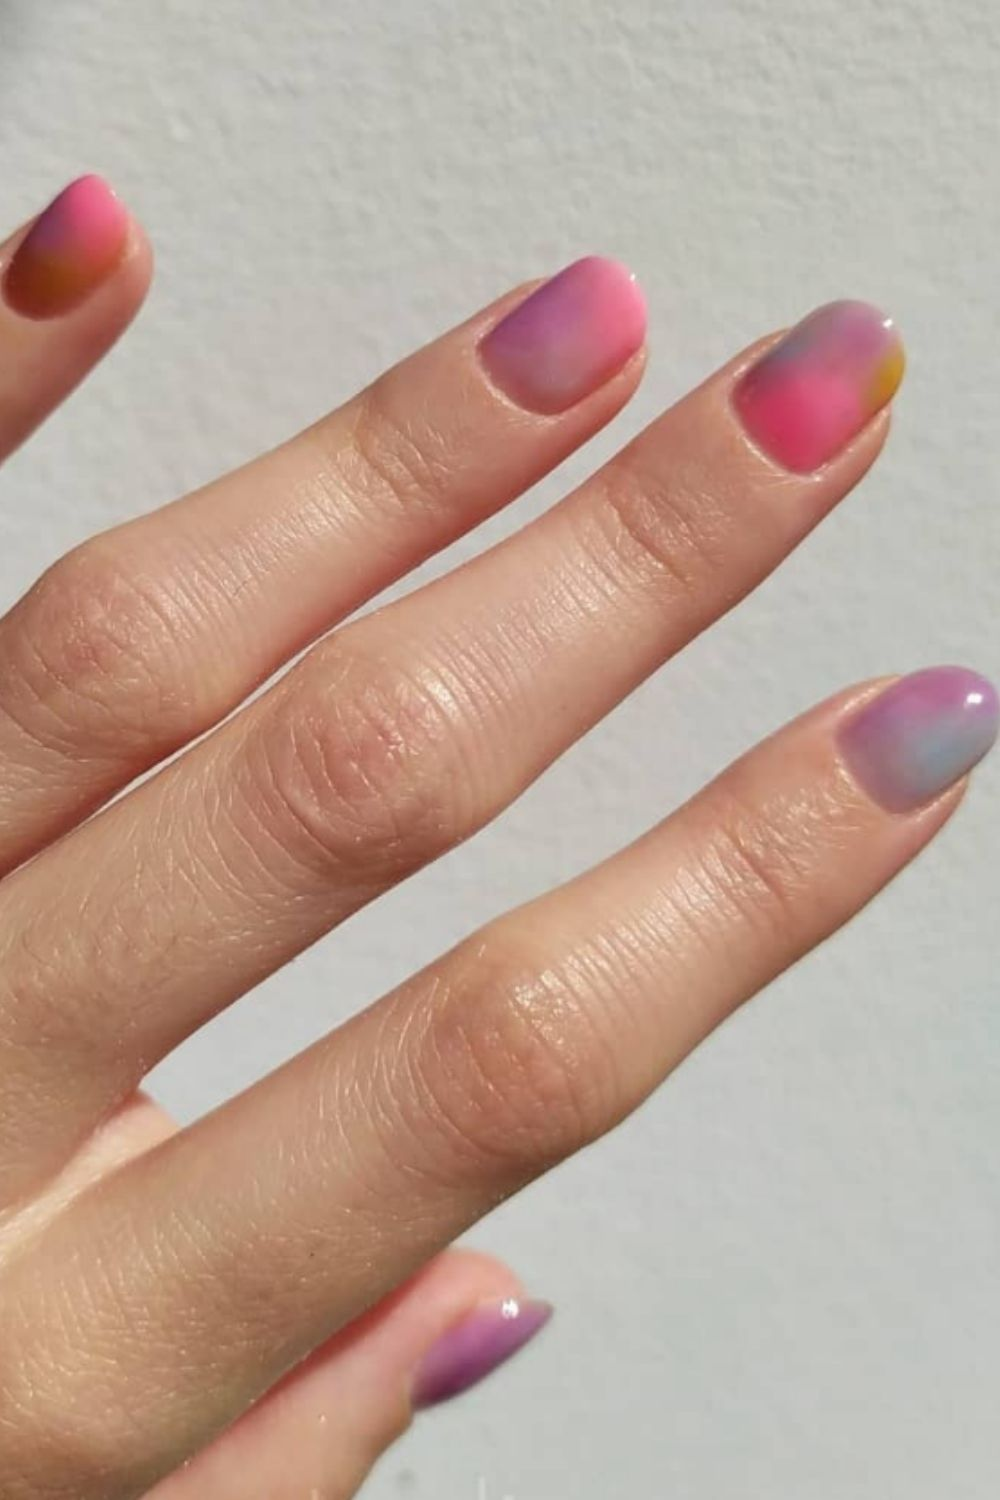 Amazing Summer Tie Dye Nails for Your Summer Vacation 2021